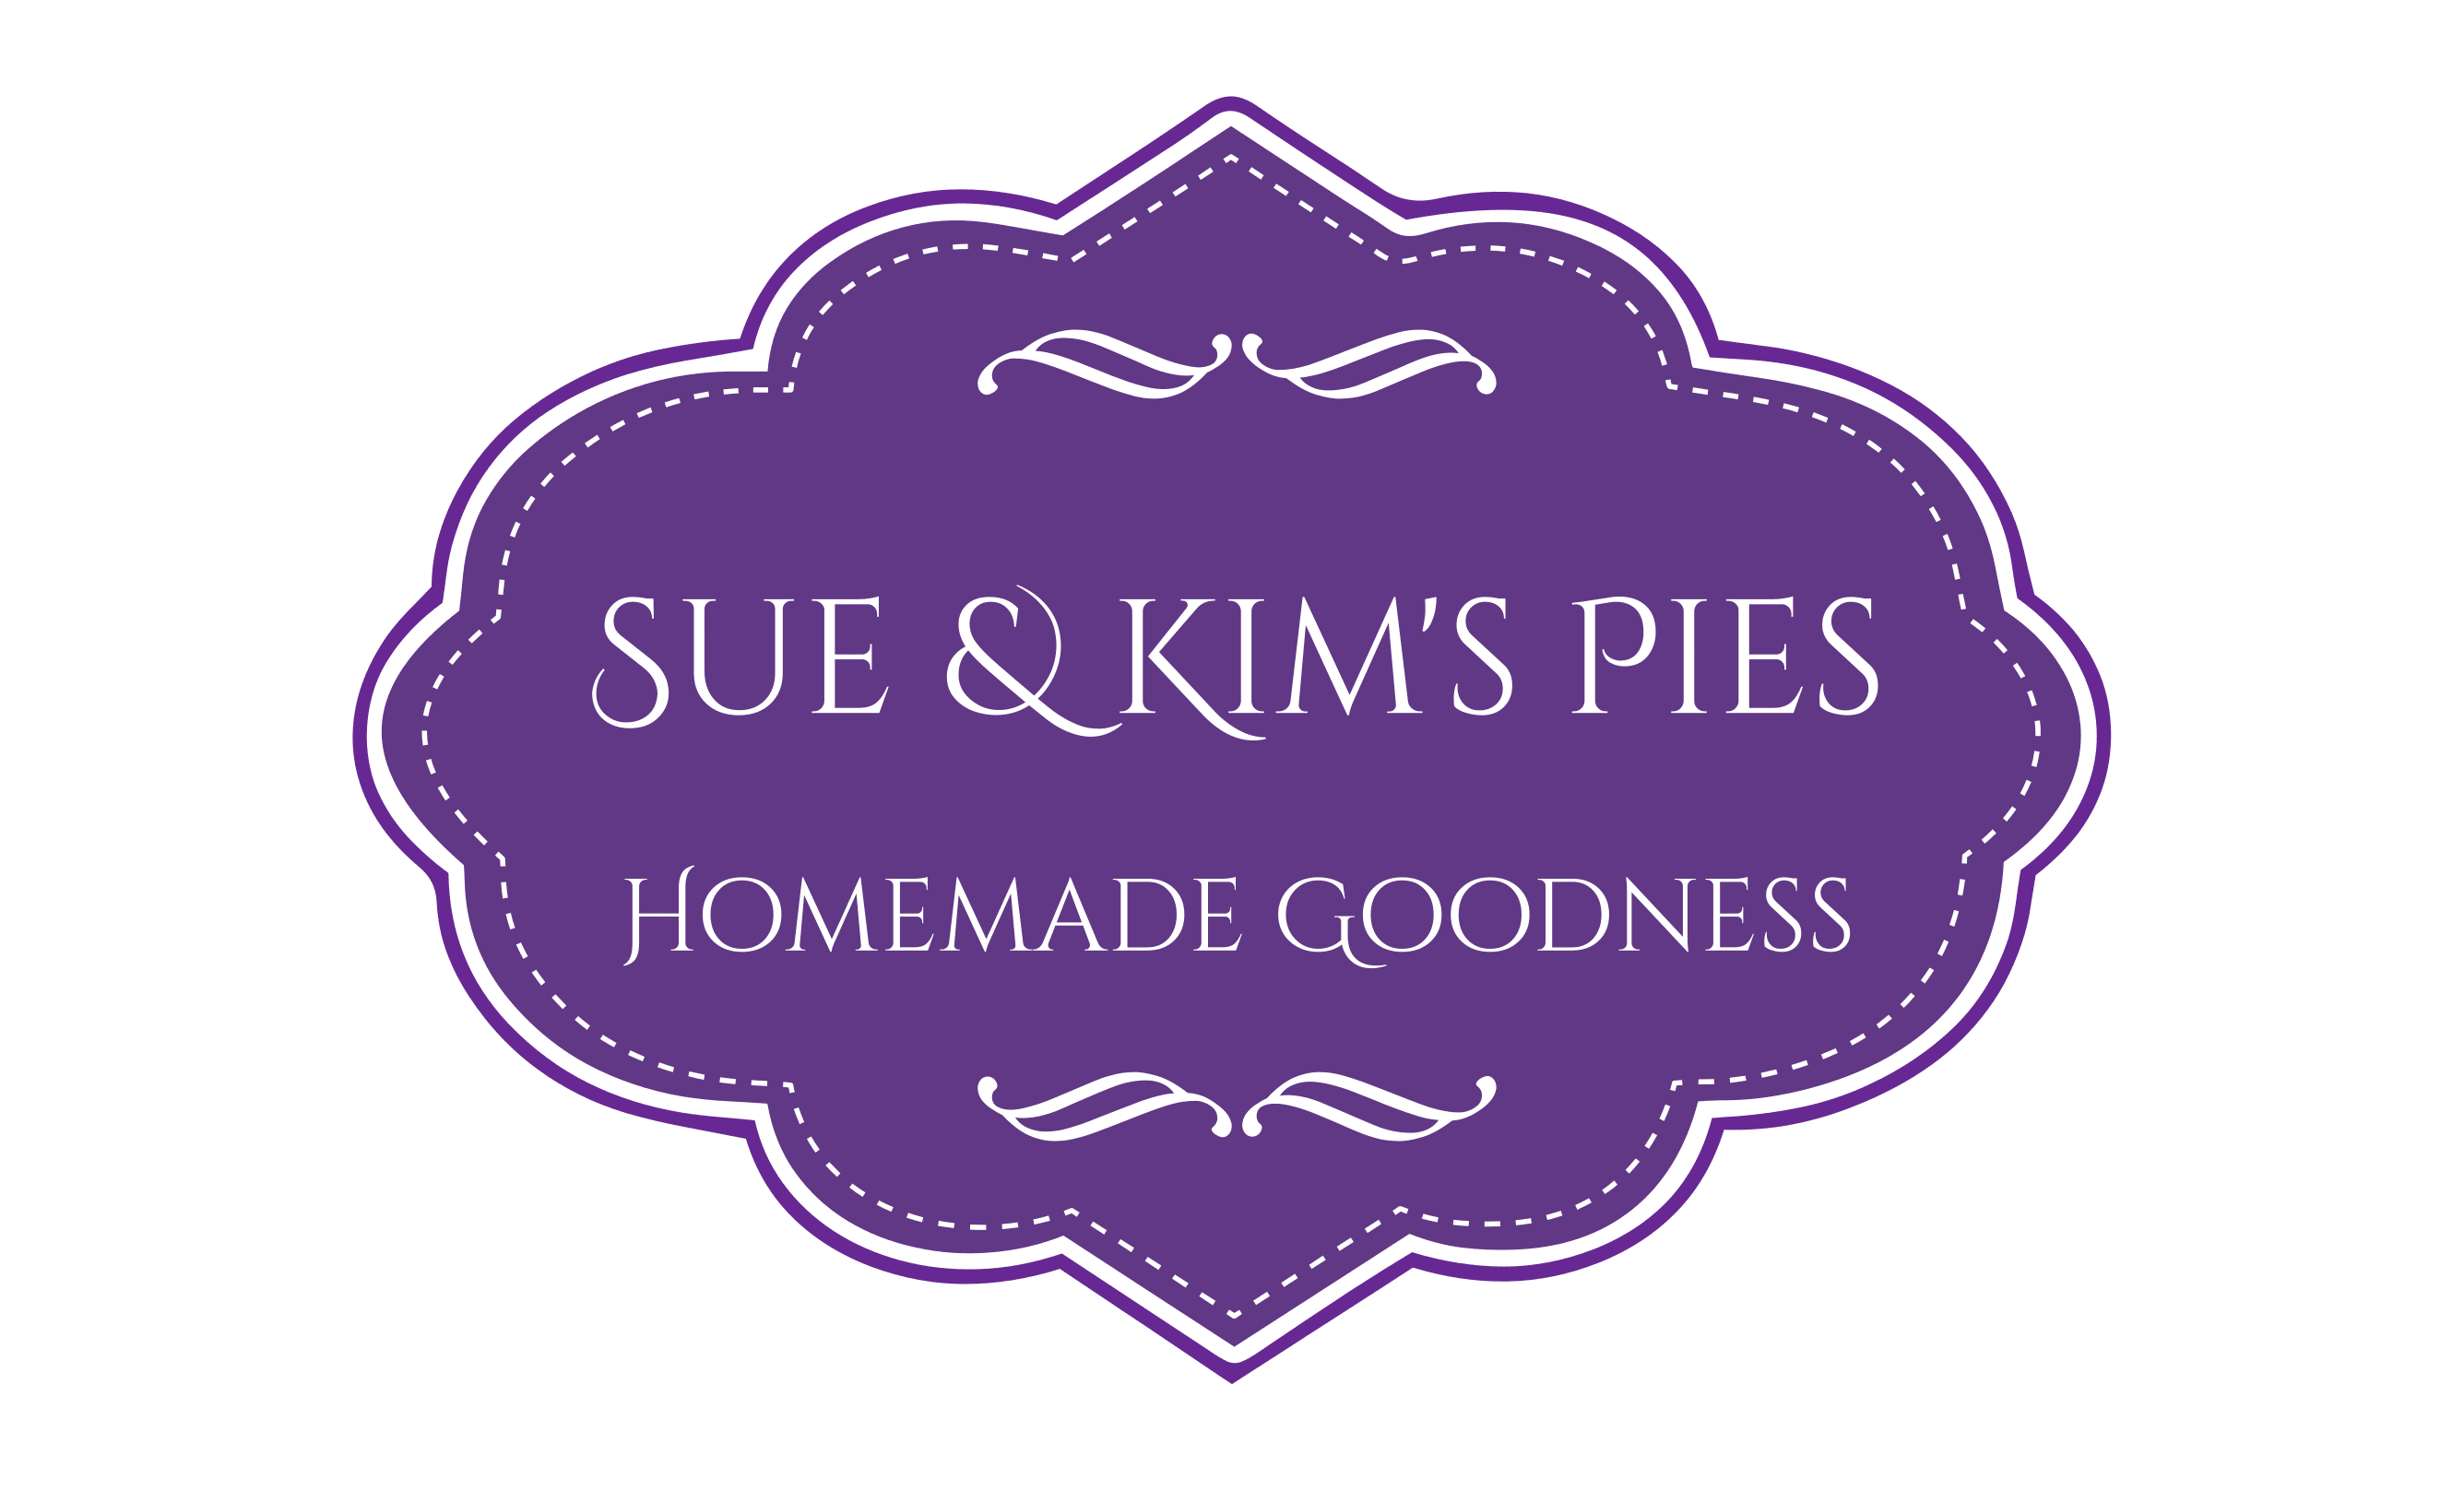 Sue & Kim's Pies LLC